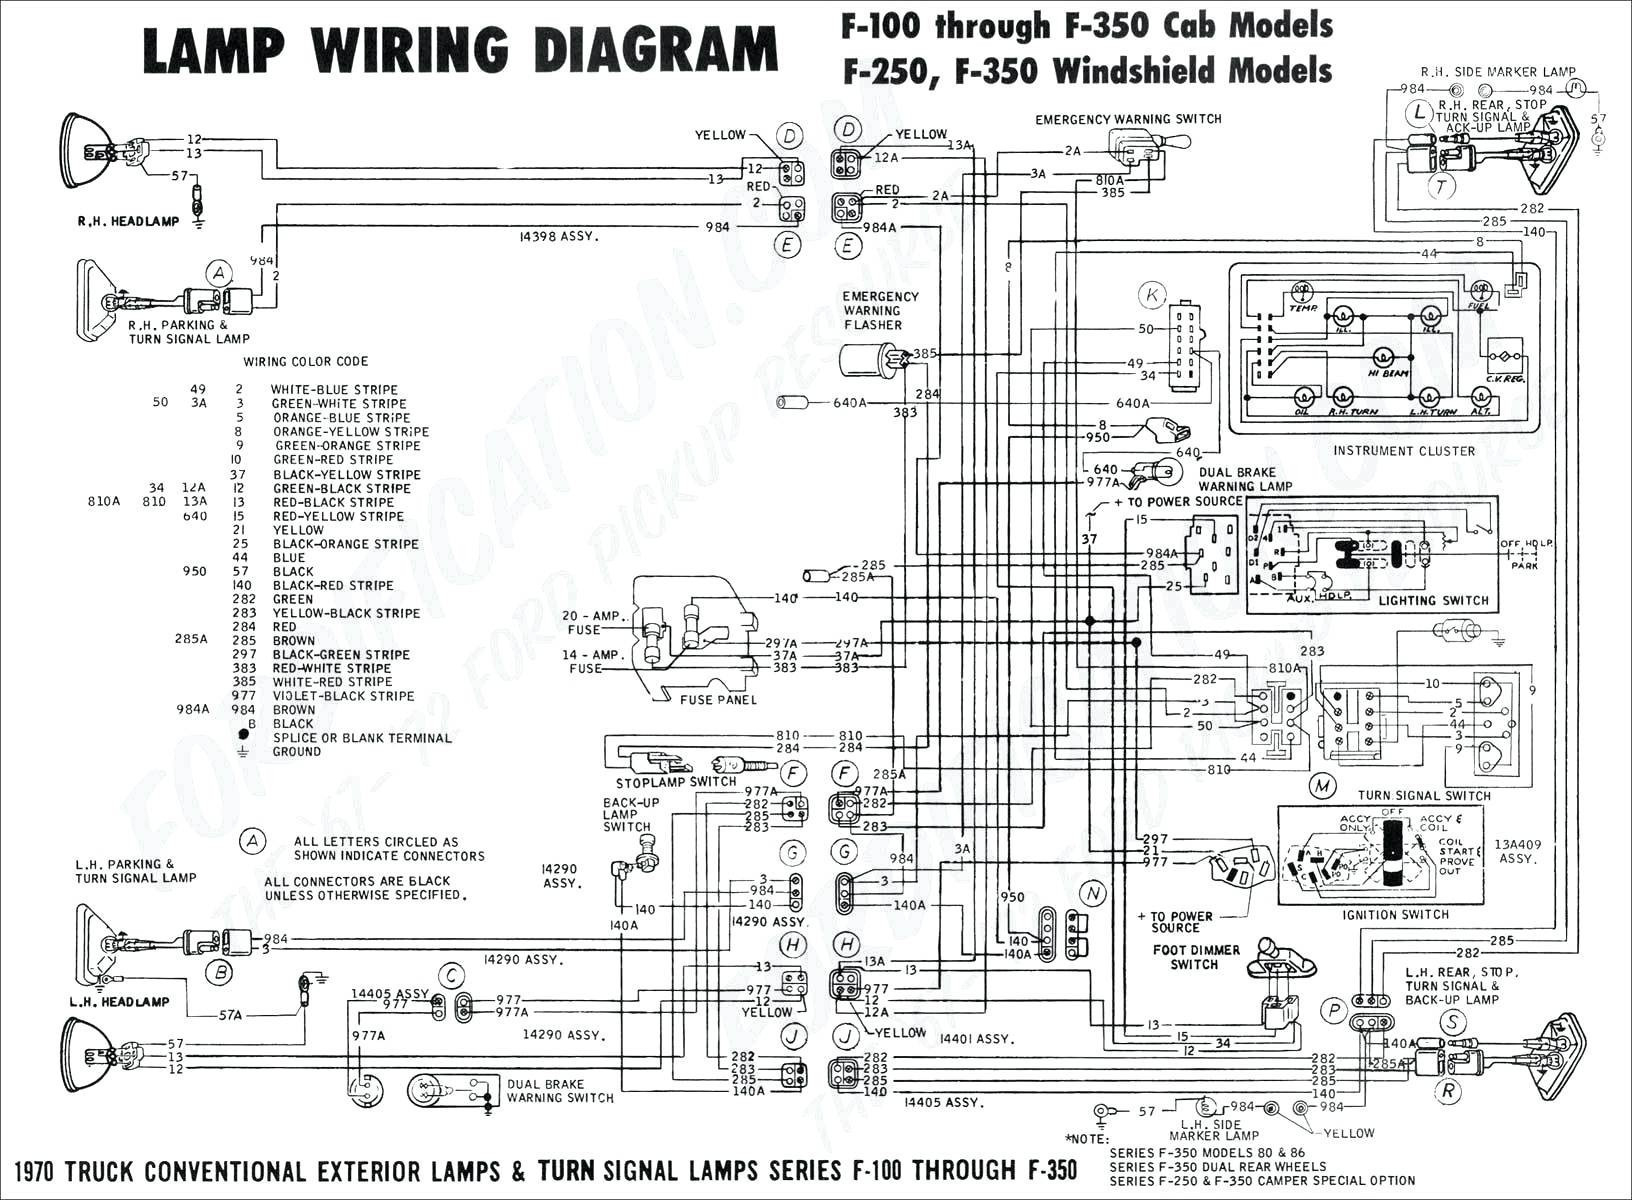 51 Elegant Pj Trailer Wiring Diagram Collection | Wiring Diagram - Silverado Trailer Wiring Diagram